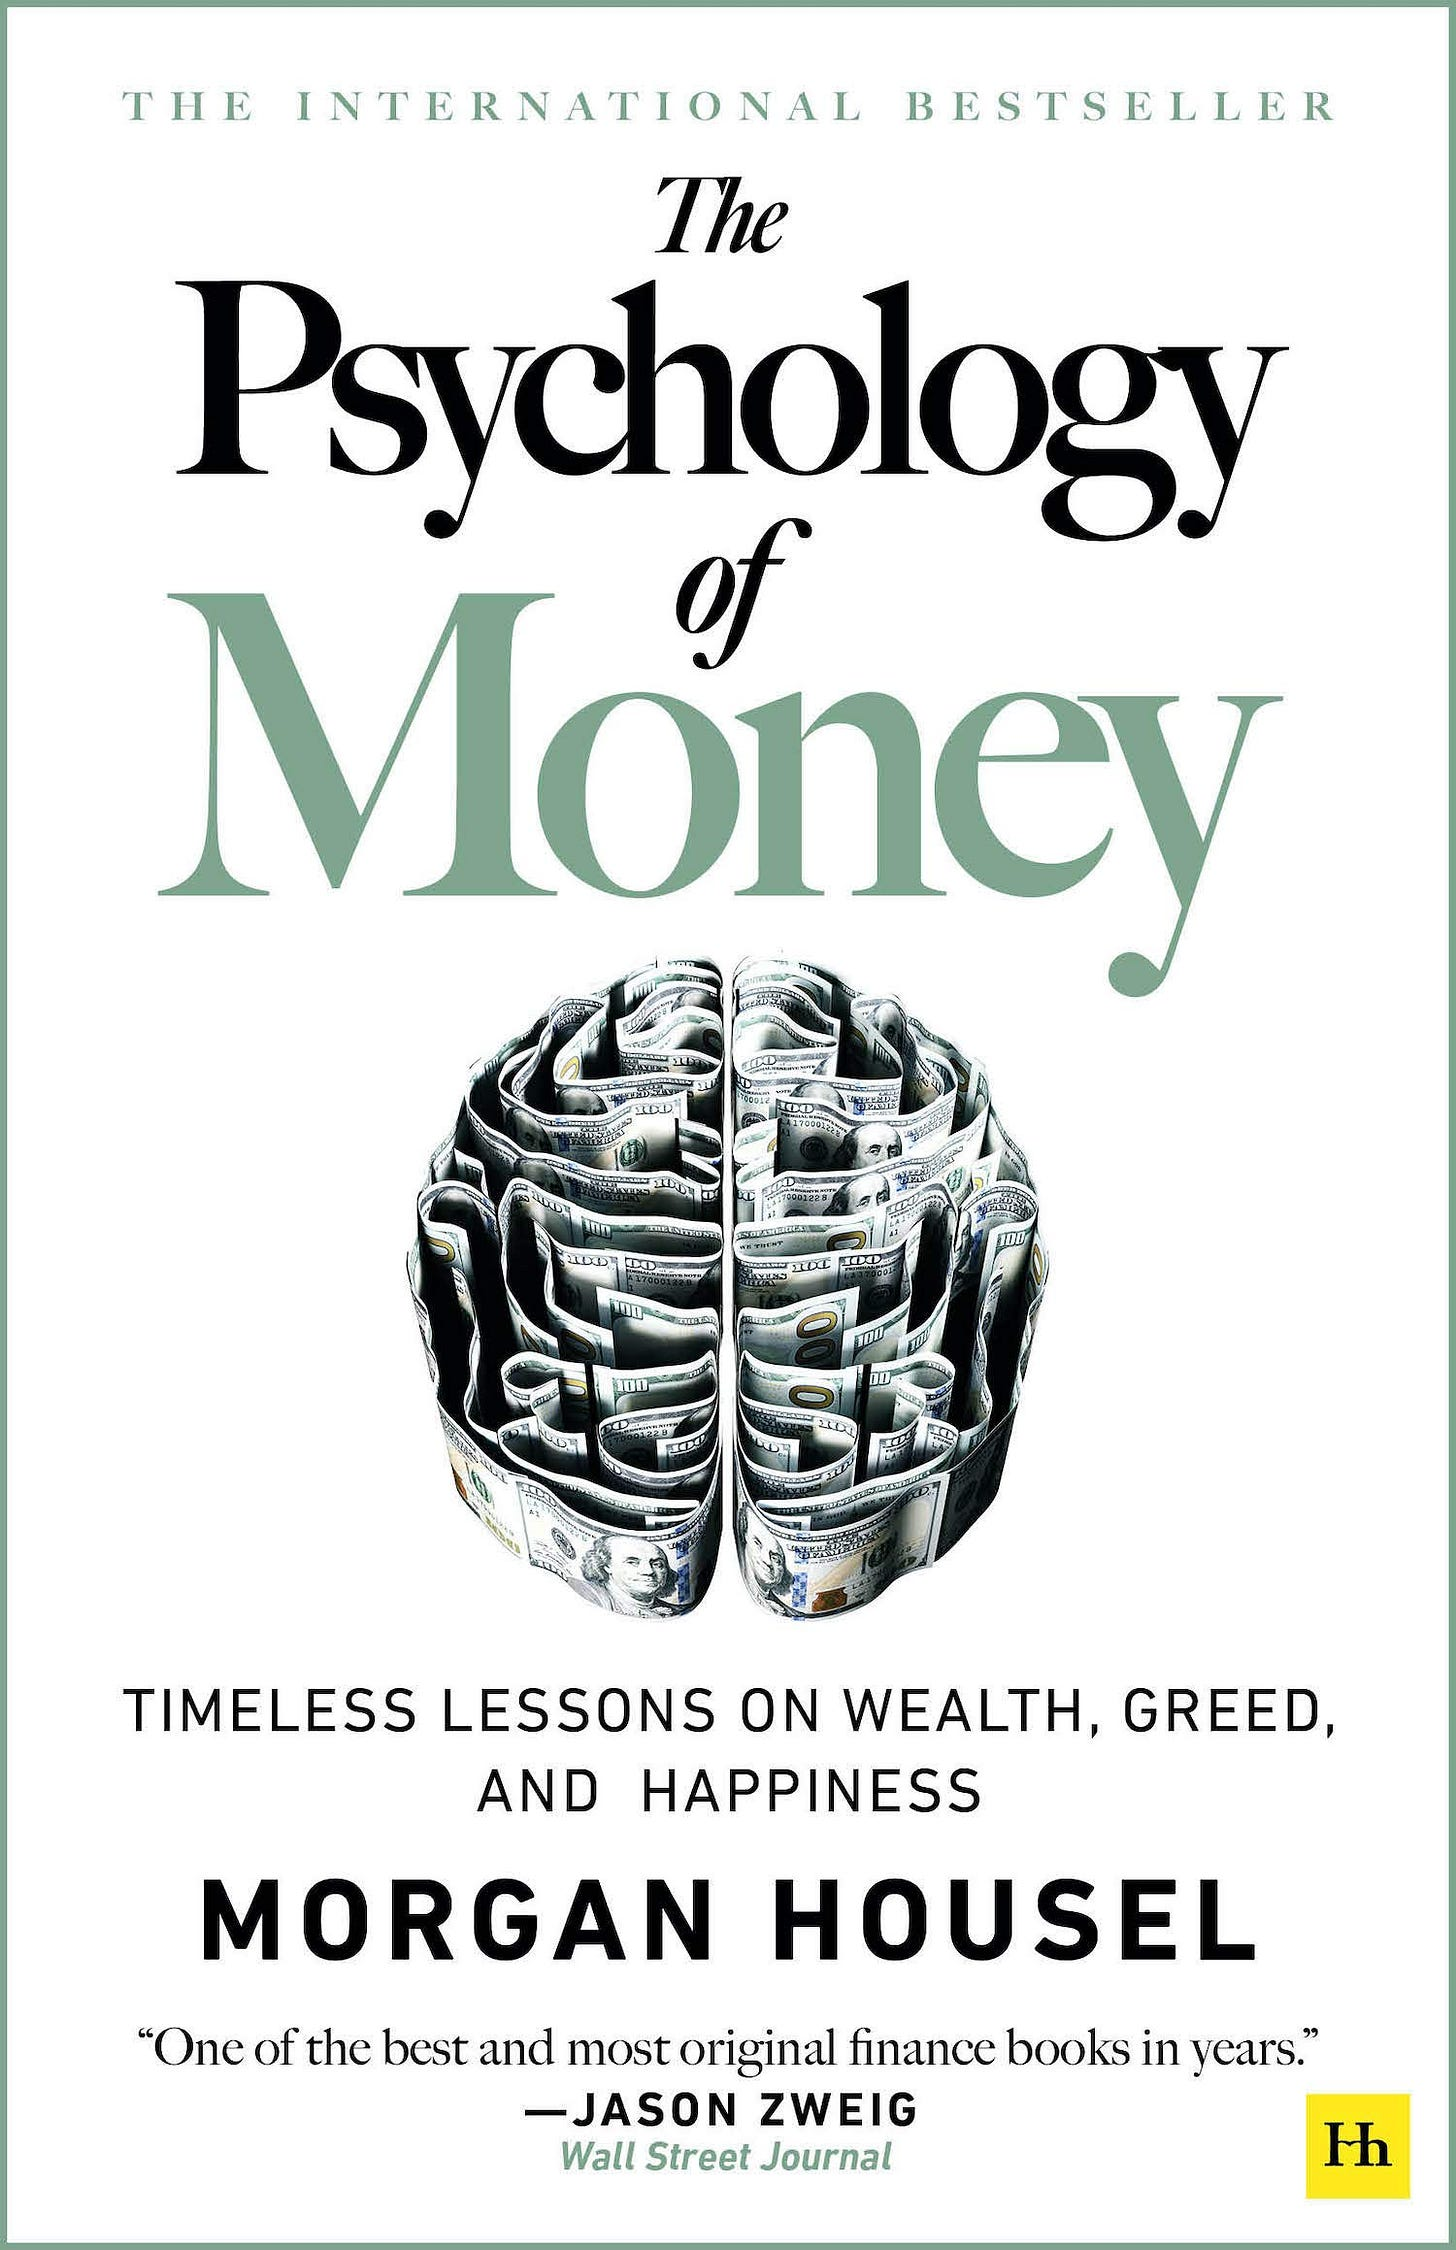 The Psychology of Money: Timeless lessons on wealth, greed, and happiness:  Housel, Morgan: 9780857197689: Amazon.com: Books